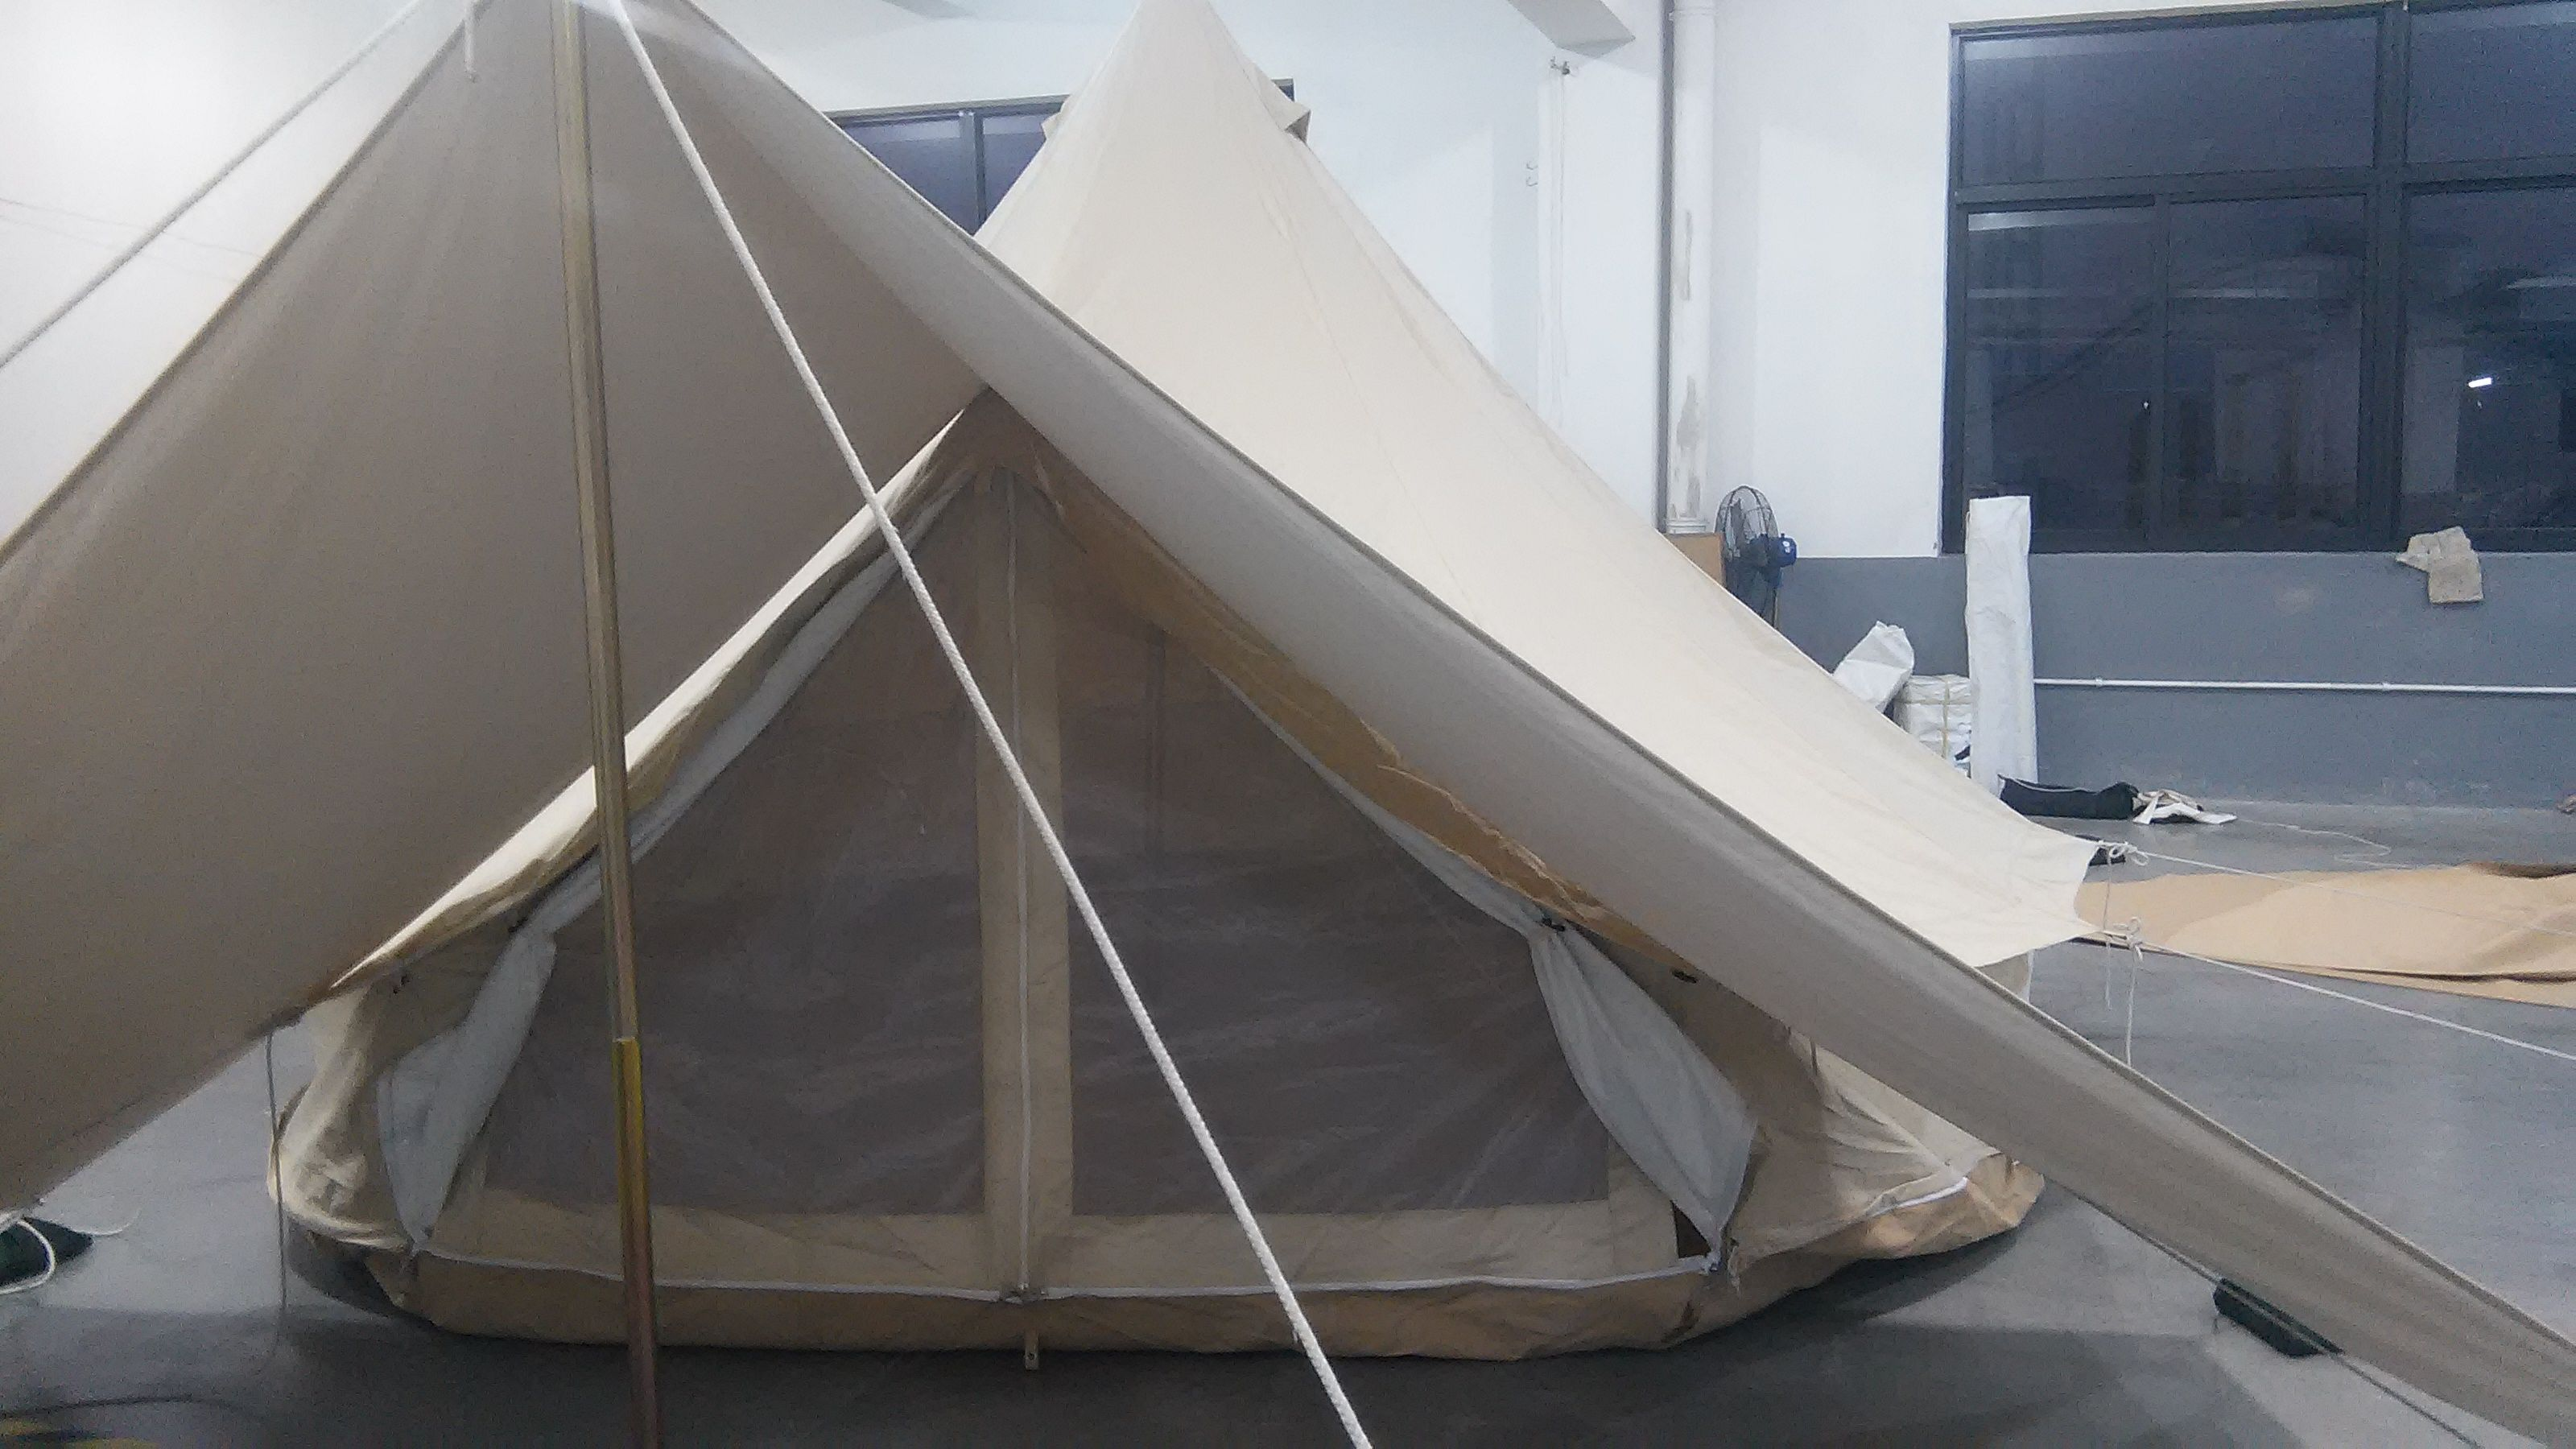 Cotton Canvas Bell Tent With Awning Canvas Bell Tent Tent Bell Tent